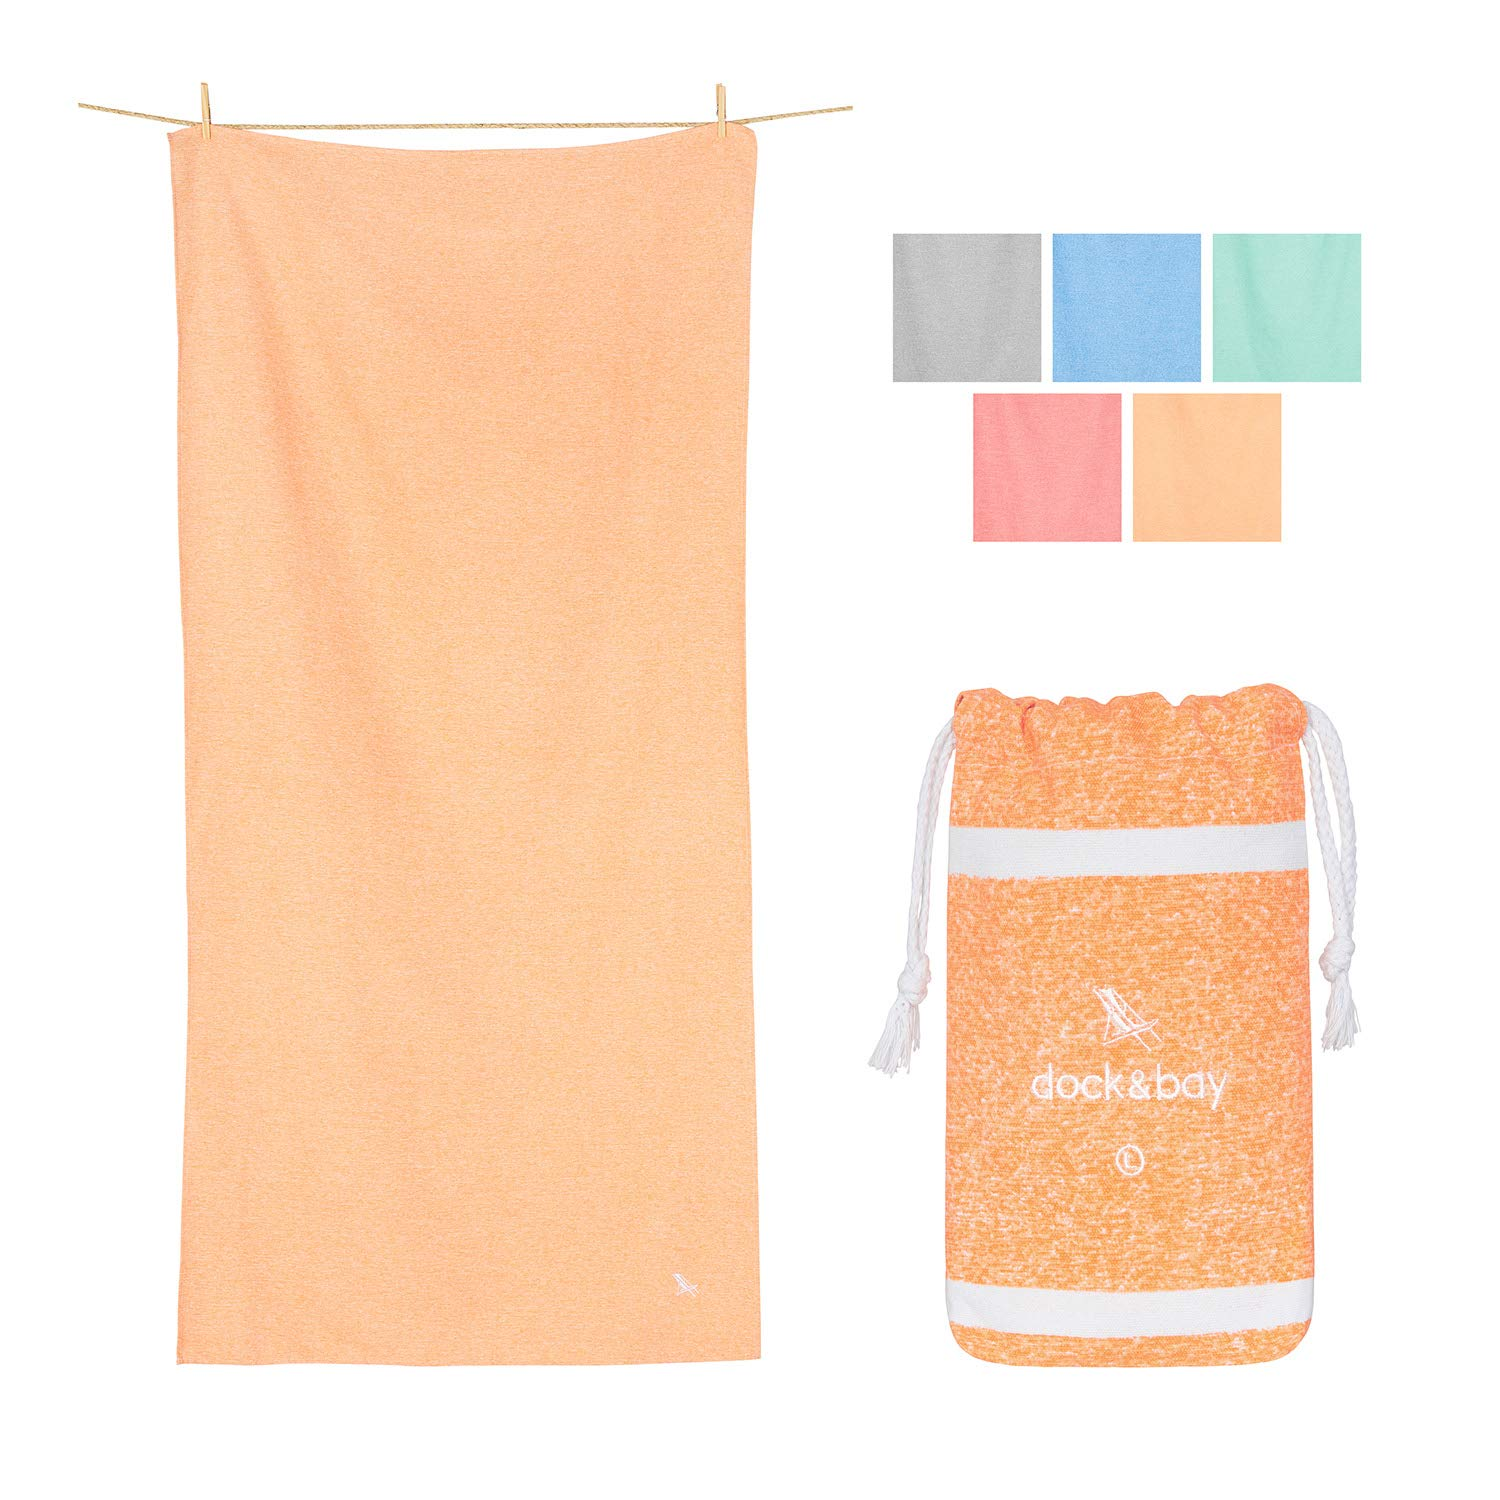 Dock & Bay XL Yoga Towels for Fitness - Dune Orange, 63 x 31 - Fitness, Shower & Travel - Fast Dry, Compact, Lightweight Towels